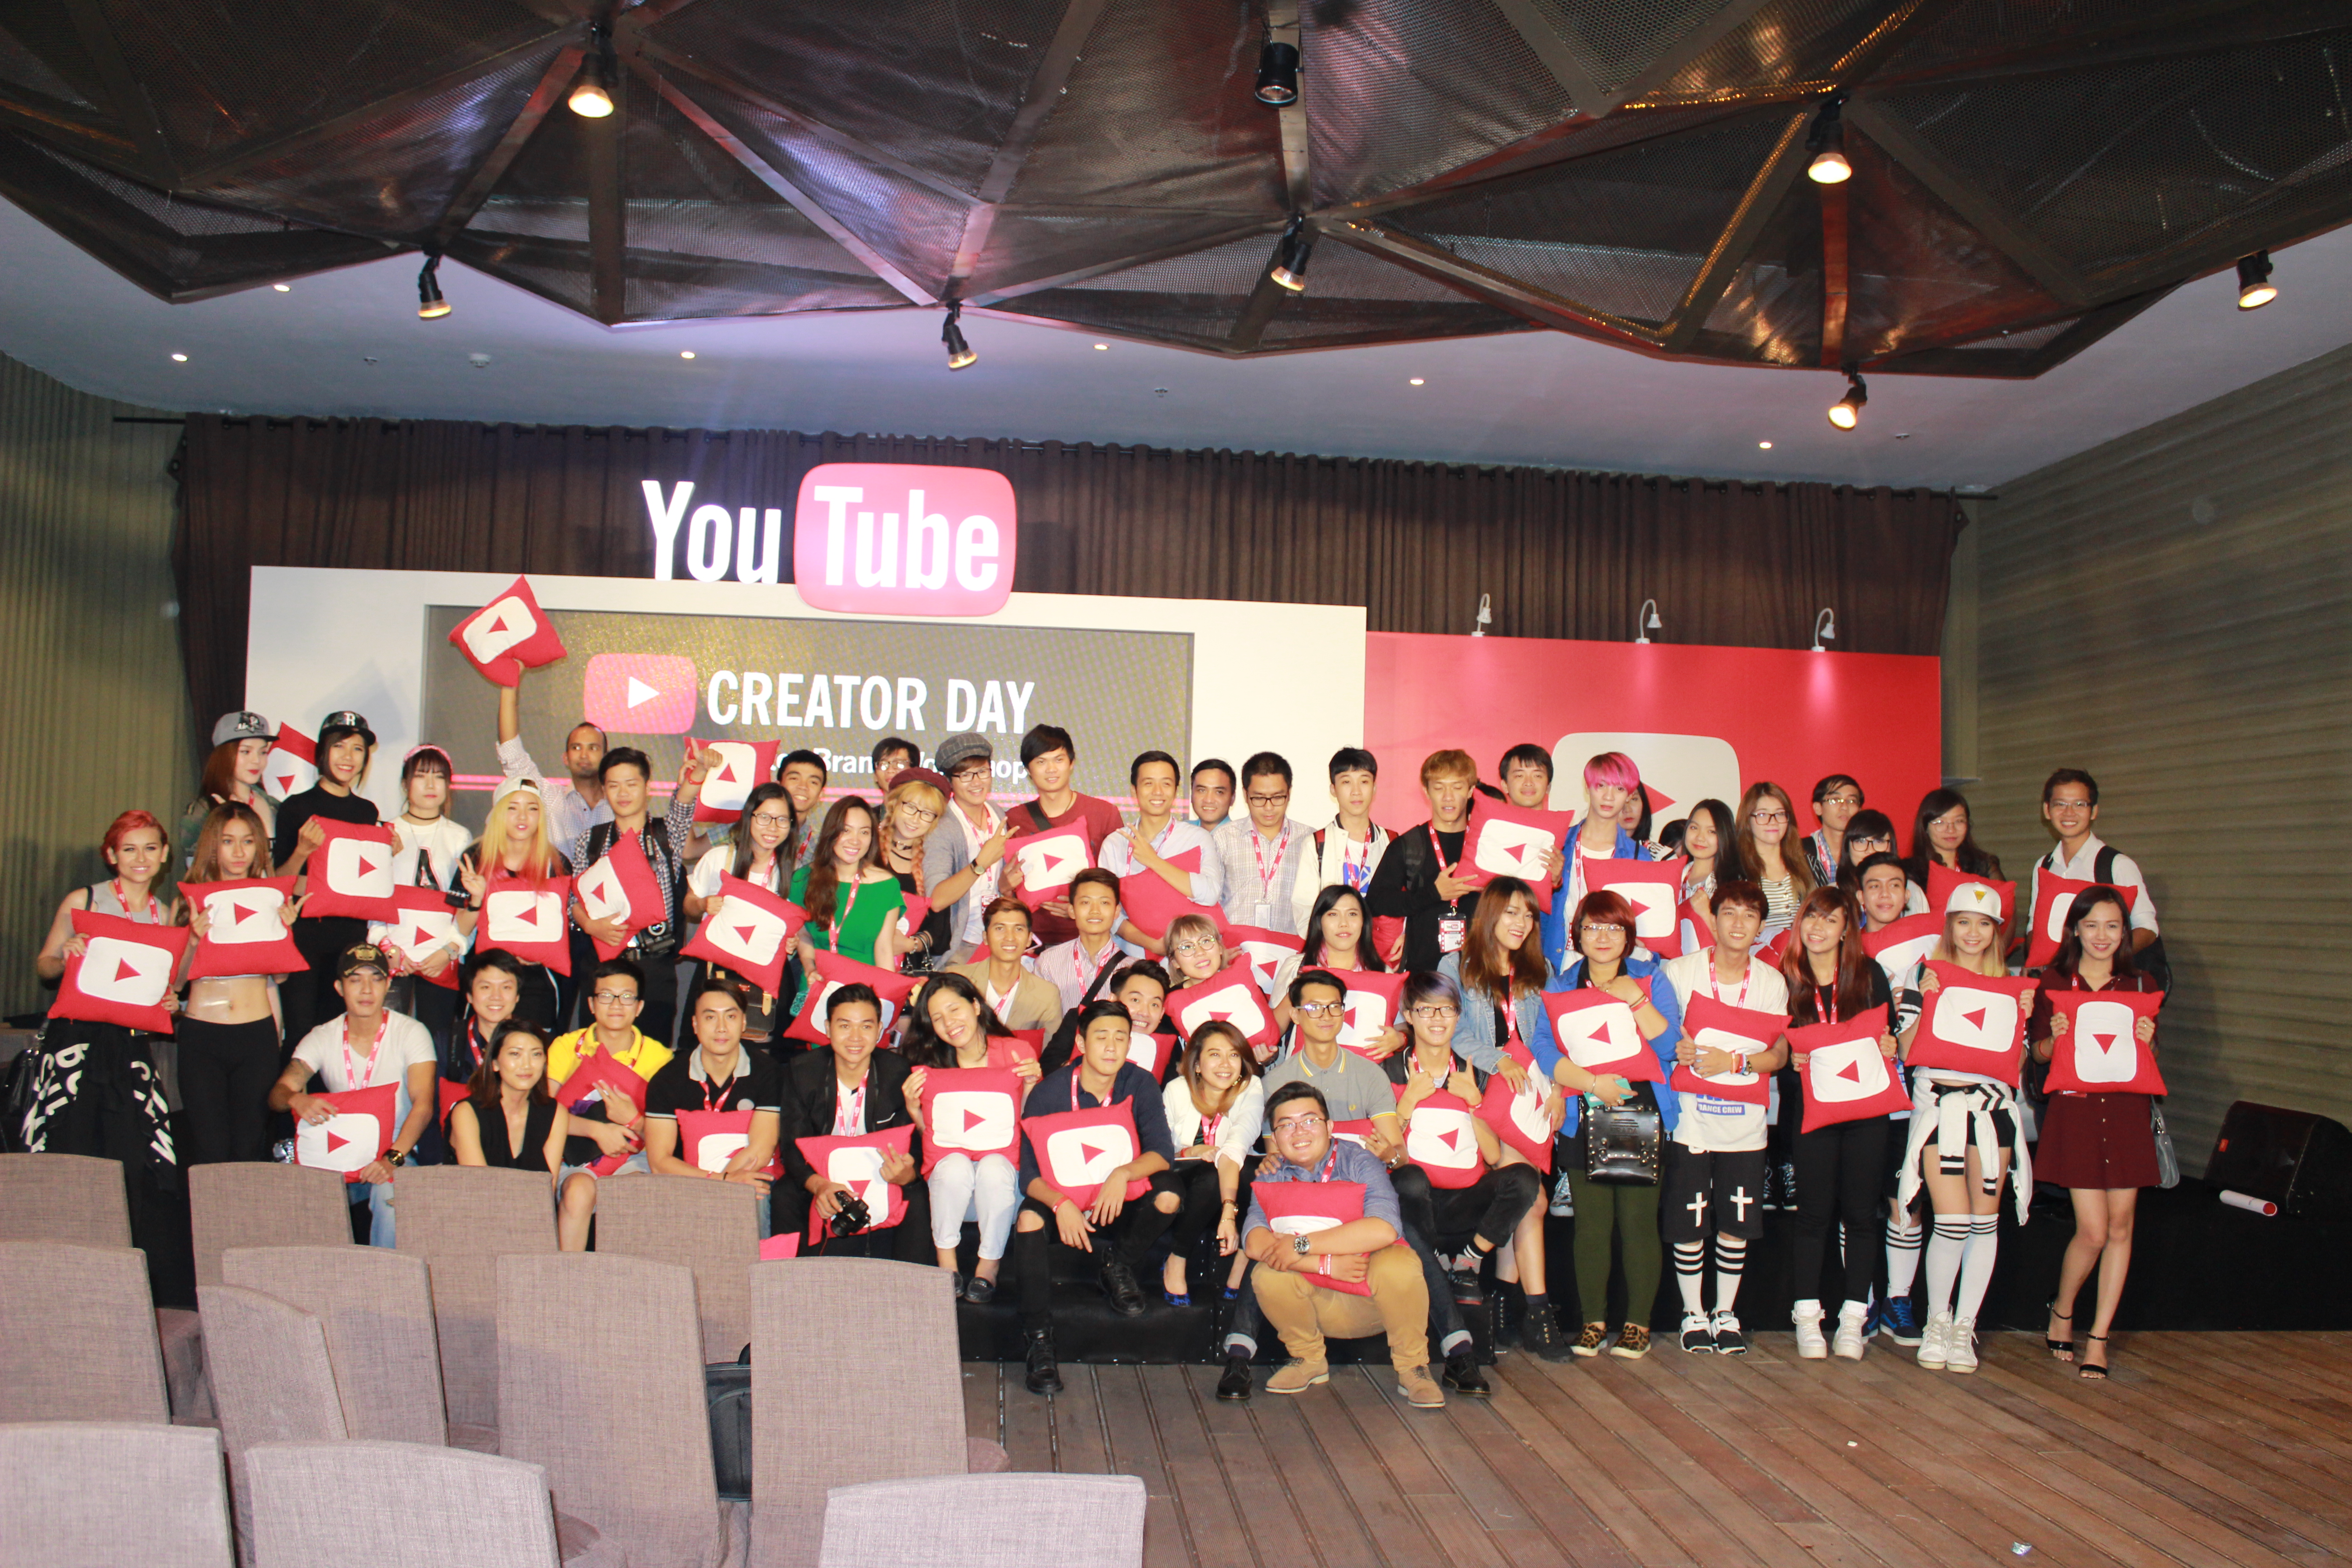 YOUTUBE - CREATOR DAY